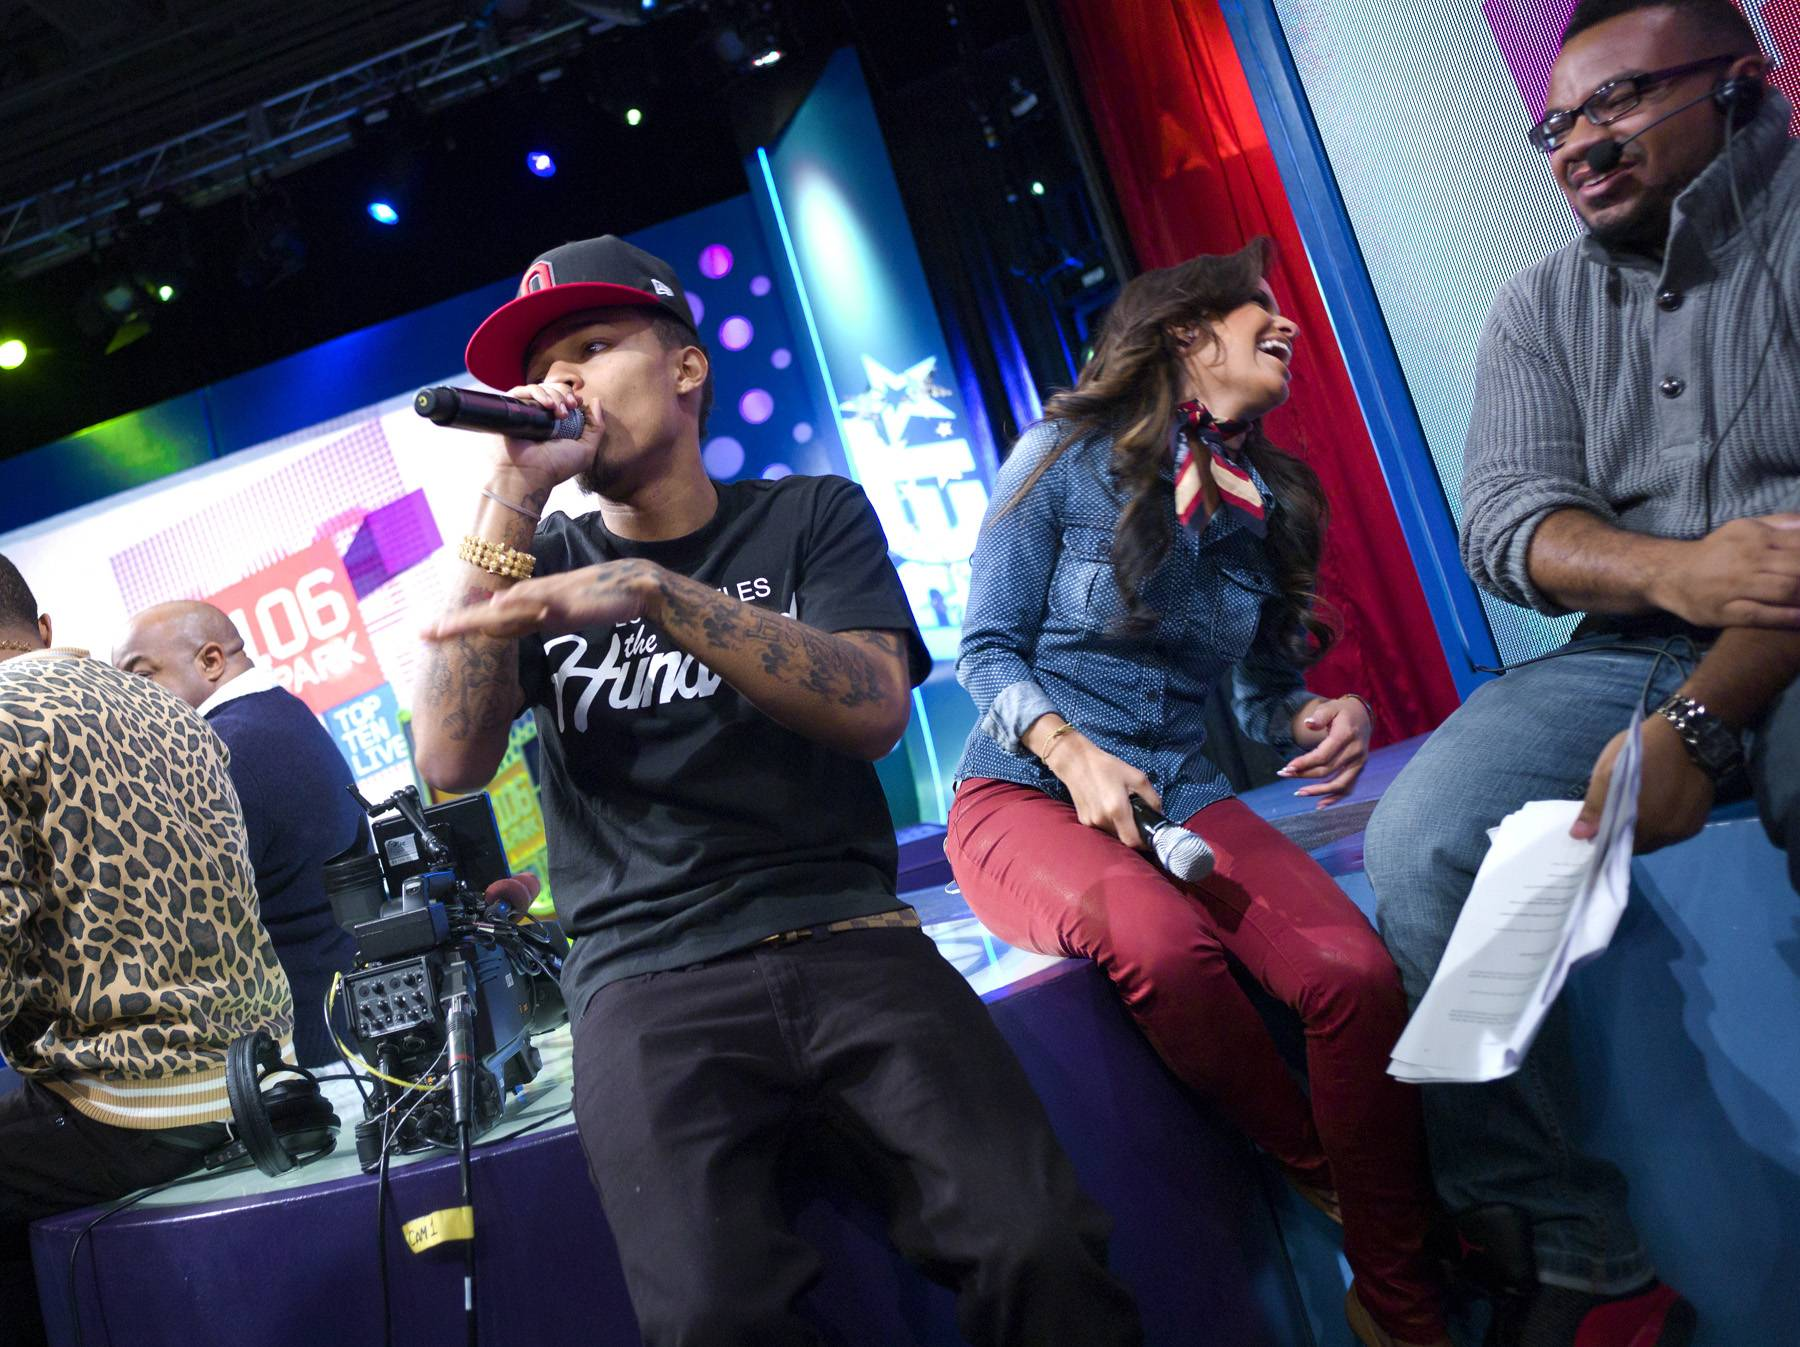 I Told You So - Bow Wow breaks into an impromptu performance during a commercial break at 106 & Park, January 23, 2012. (Photo: John Ricard / BET)